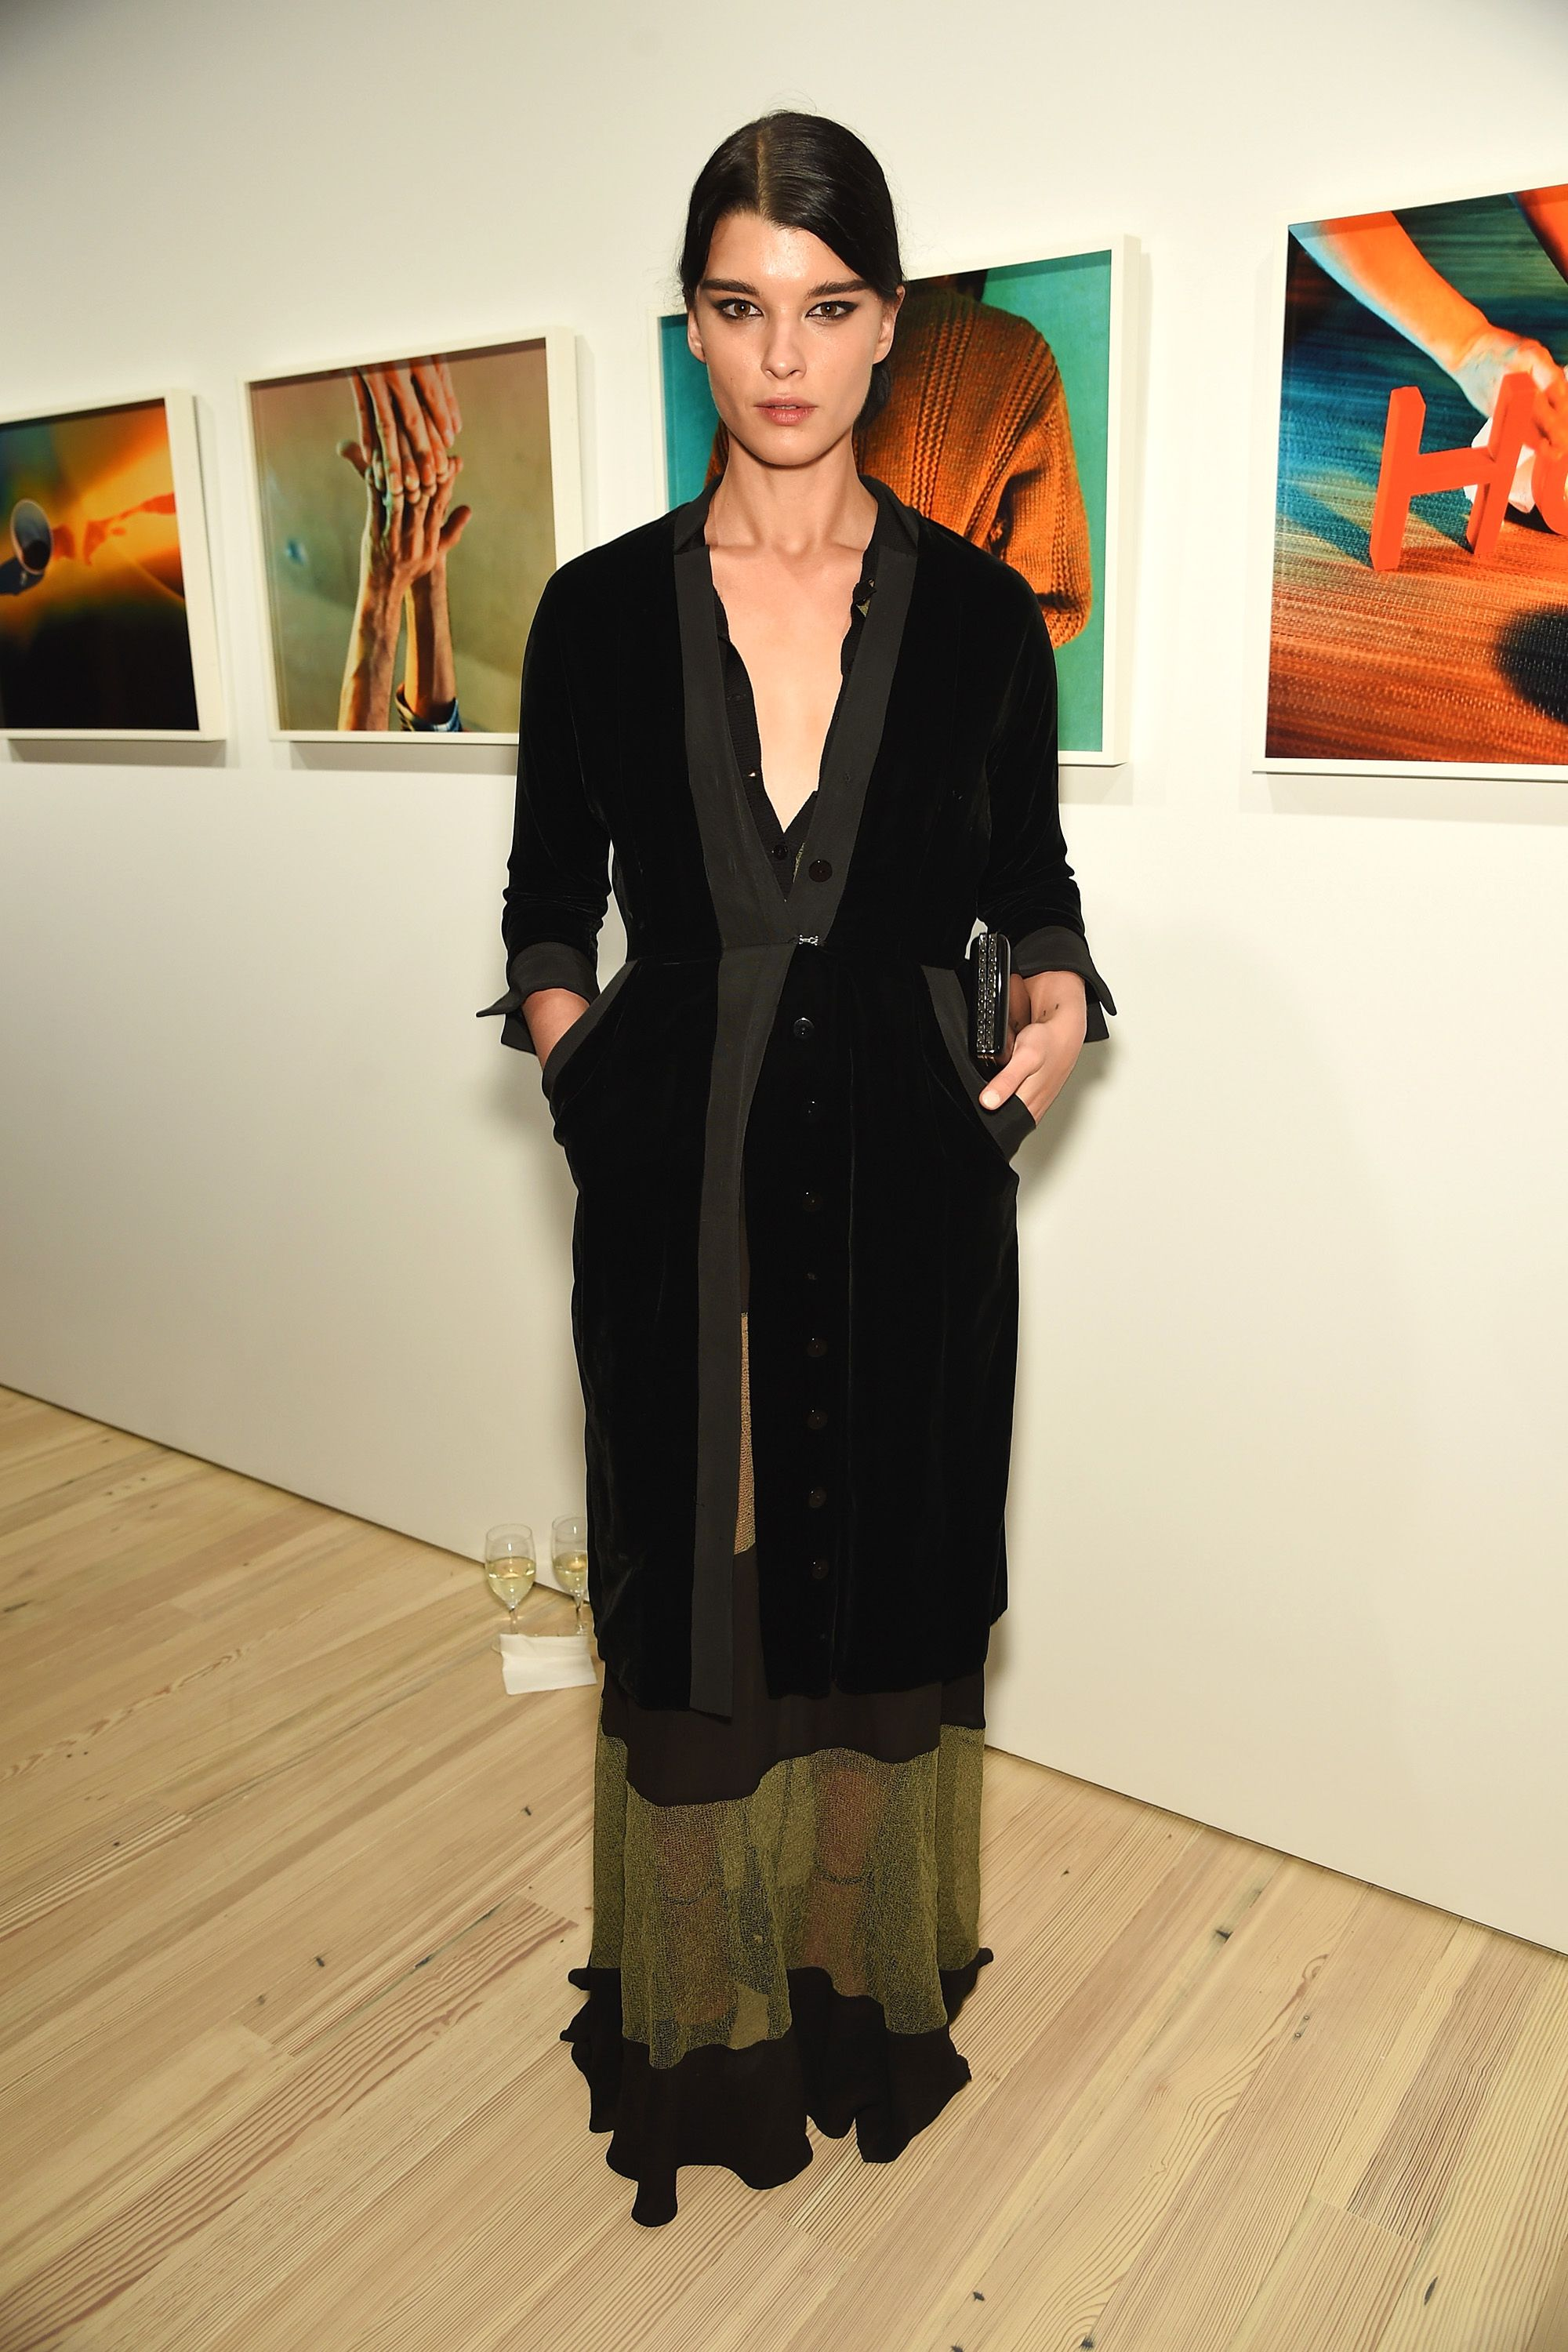 NEW YORK, NY - APRIL 02:  Model Crystal Renn attends Audi's Celebration of partnership with the Whitney Museum on April 2, 2015 in New York City.  (Photo by Dimitrios Kambouris/Getty Images for Audi)